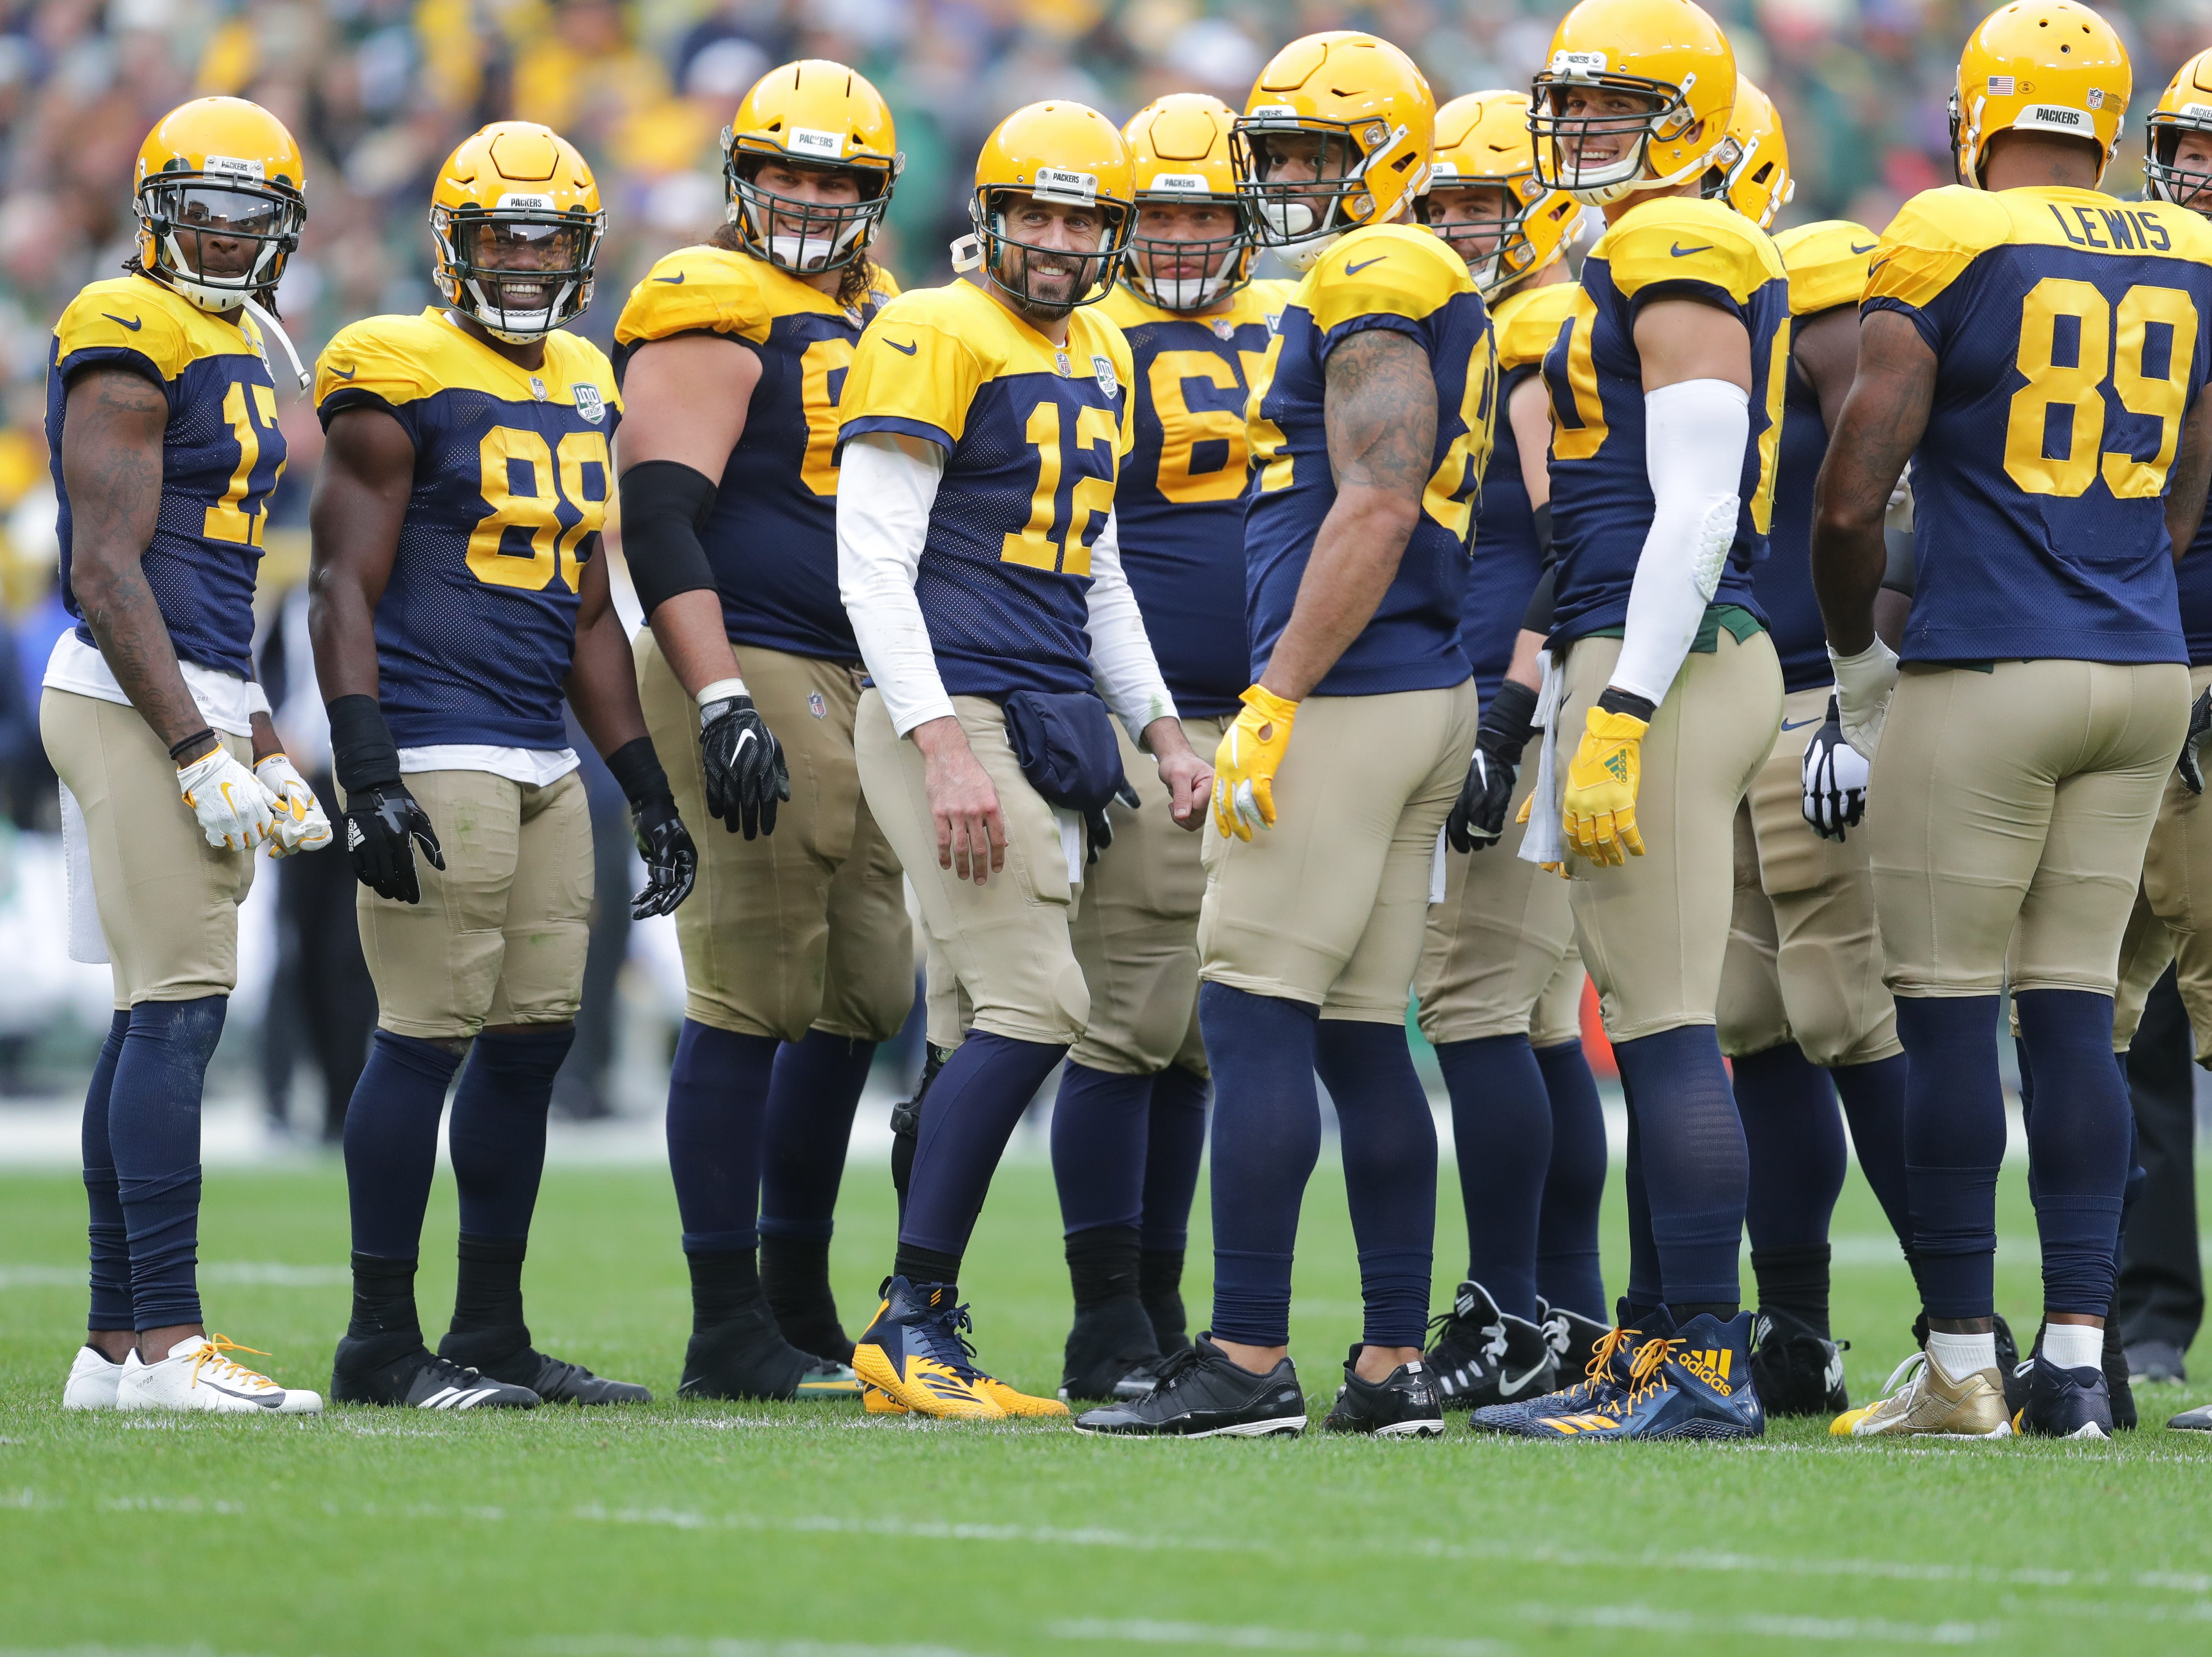 Green Bay Packers quarterback Aaron Rodgers (12) and his teammates look to a group of fans dressed as monks in honor of the Dalai Lama since Aaron Rodgers made a trip to India to meet the  Dalai Lama in April of this year. during the 4th quarter of the Green Bay Packers 22-0 win against the Buffalo Bills at Lambeau Field in Green Bay, Wis. on Sunday, September 30, 2018. Mike De Sisti /USA TODAY NETWORK-Wisconsin